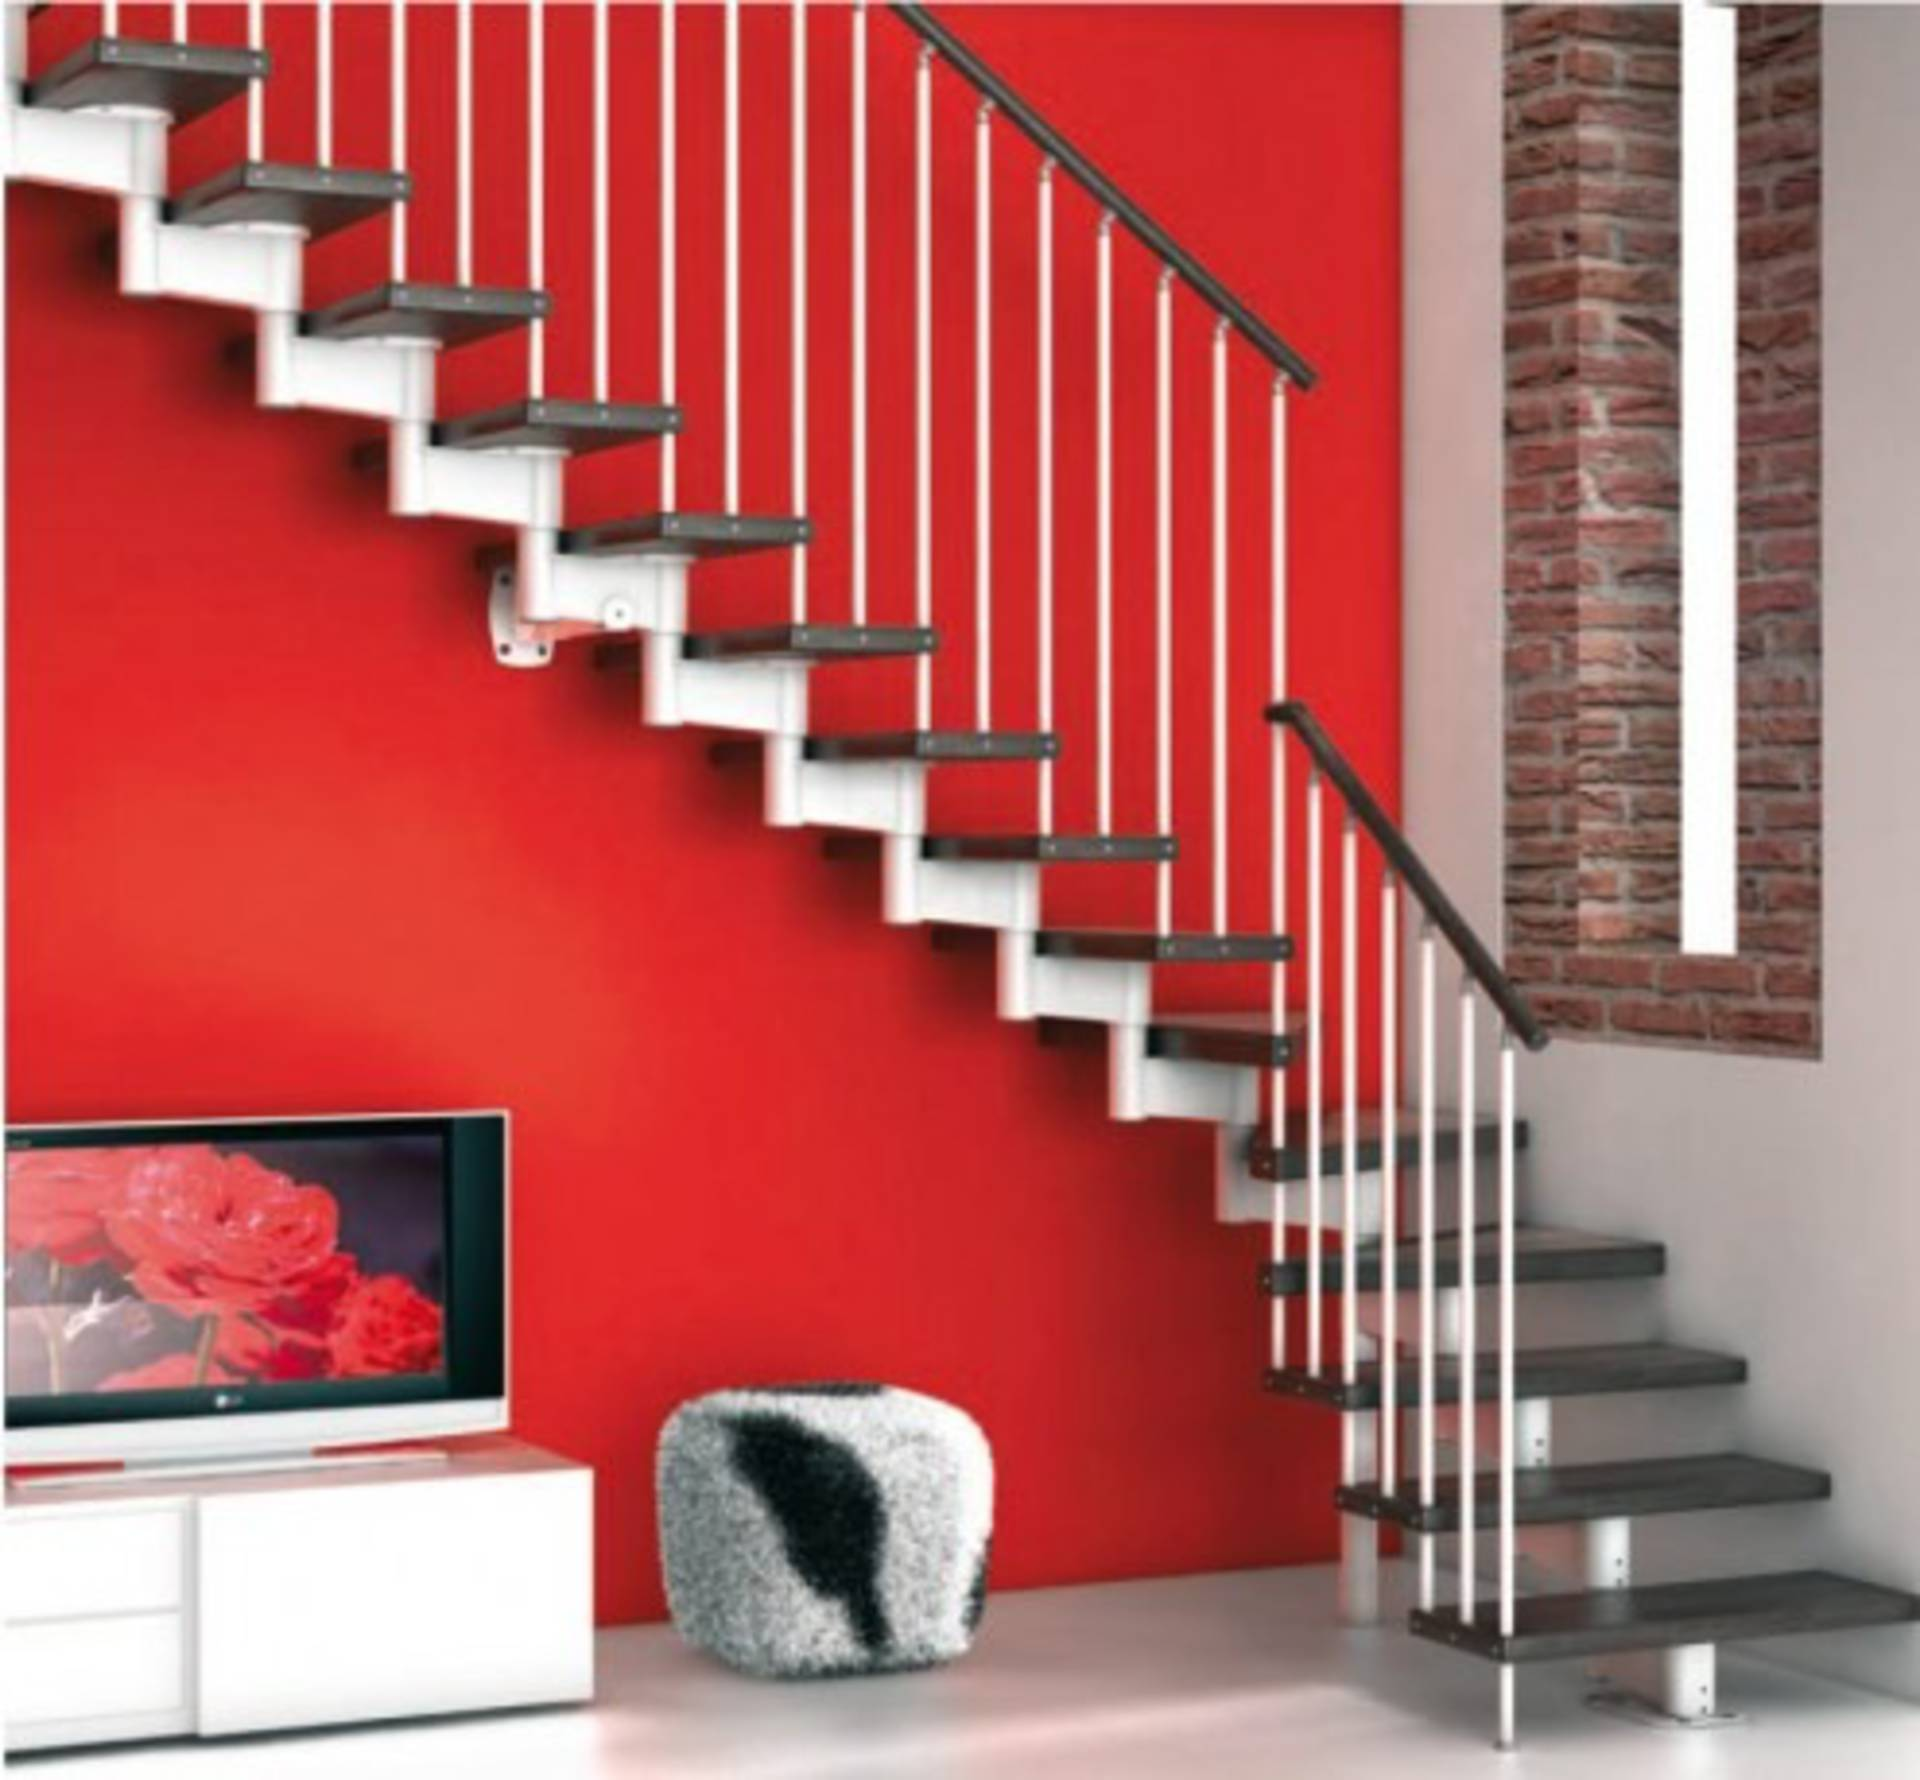 Beau Stair Design Ideas For Your Home By Scale Nilur